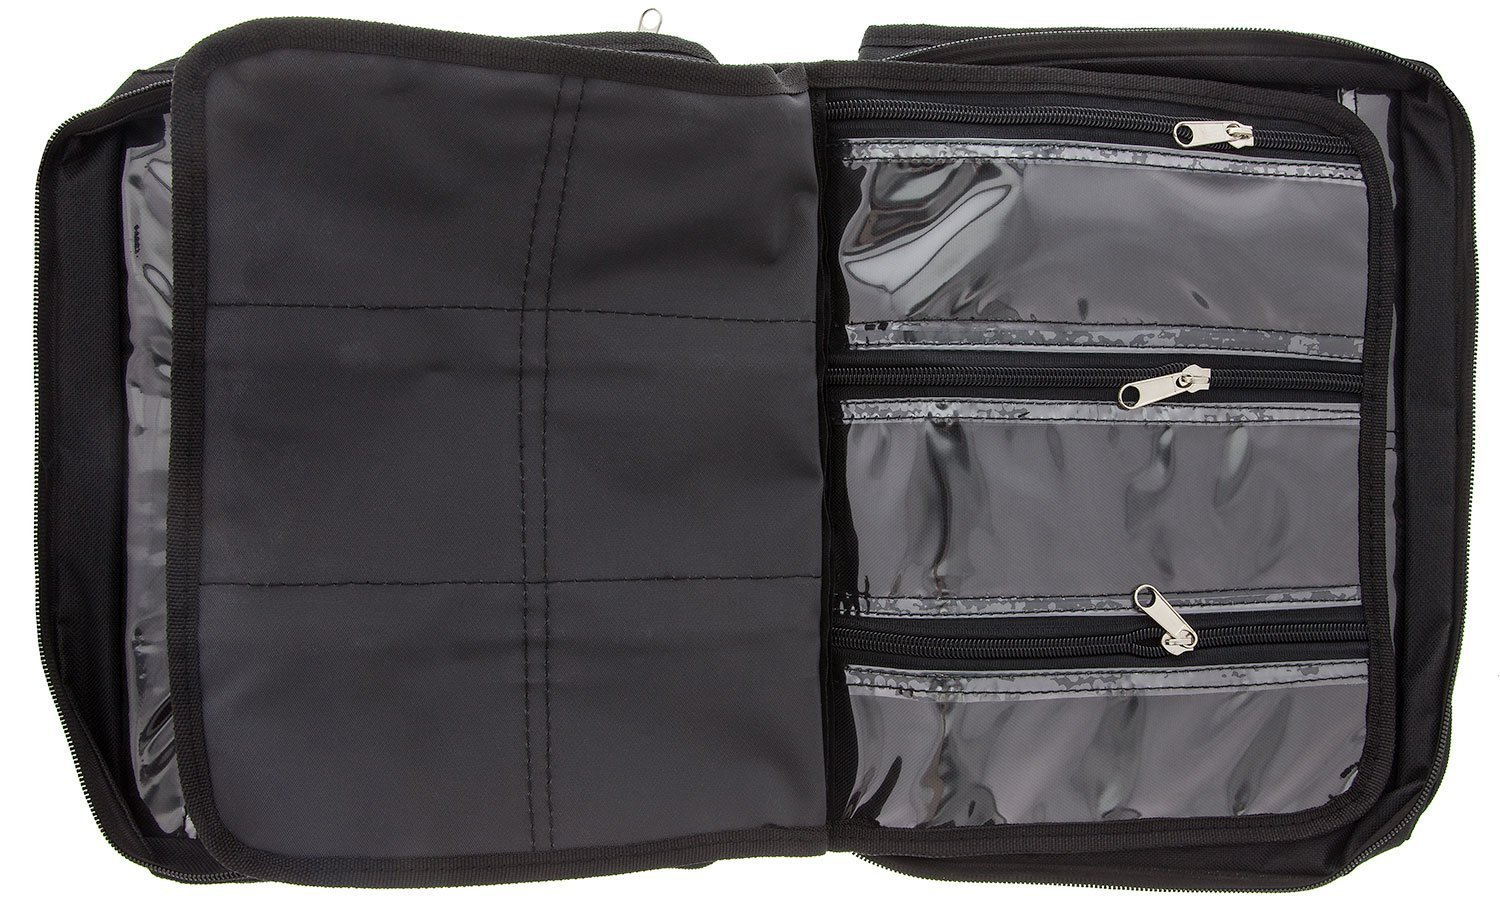 BeadSmith Black Crafter's Tote Bag, with 2 Removable Pockets and 23 Compartments 12x10 inch UK Shop f